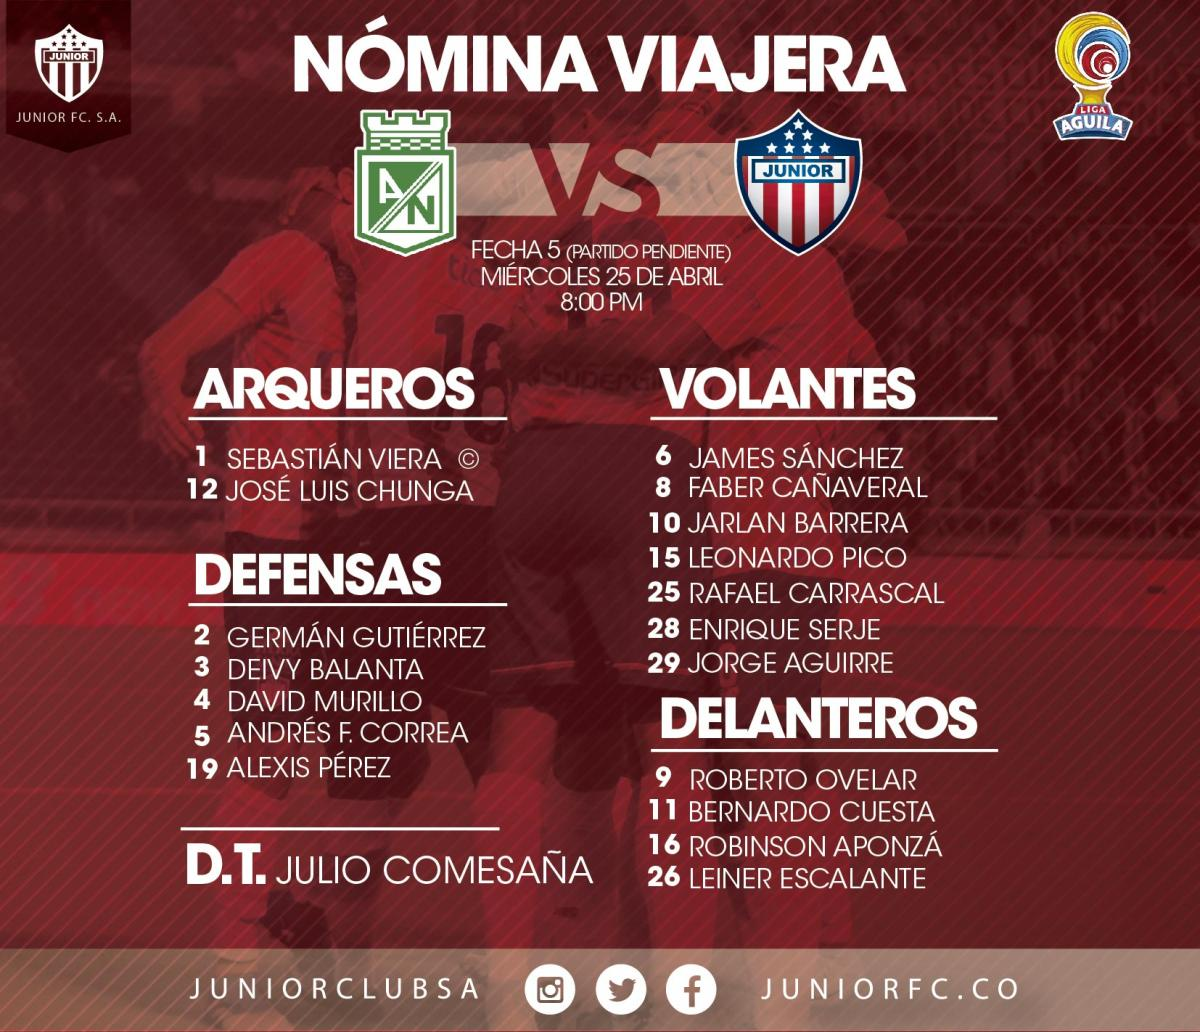 CONVOCADOS 2017 Nacional vs. Junior-01.jpg